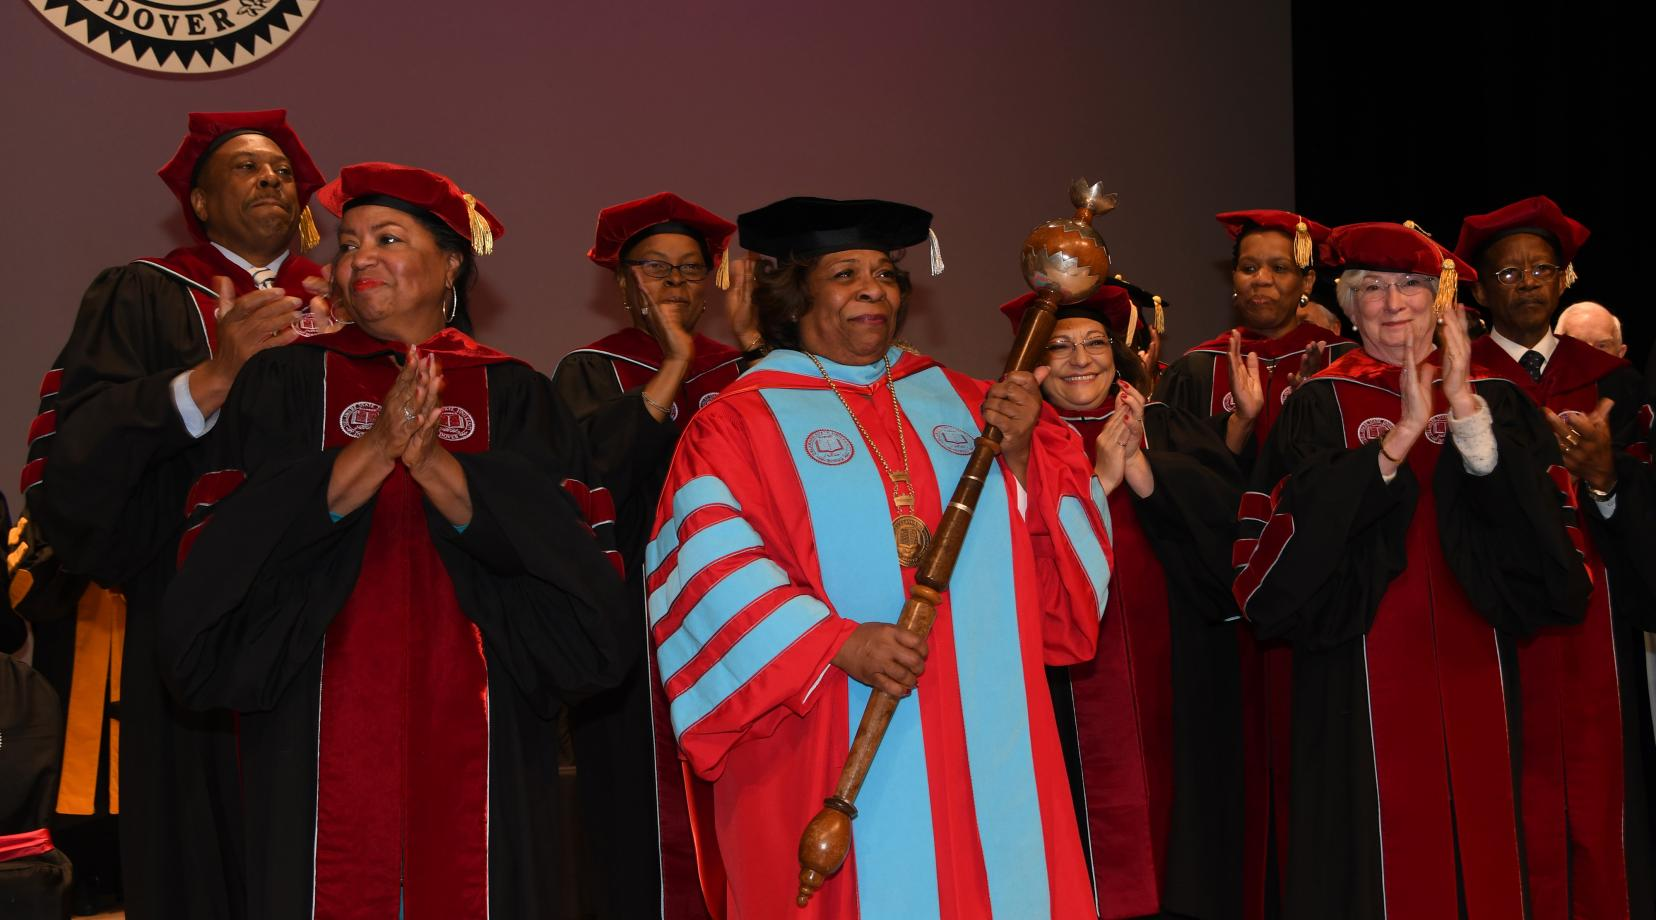 Surrounded by the University's Board of Trustees, the institution's 11th President receives the applause of all those in attendance at the Investiture Ceremony in the Education & Humanities Theatre.